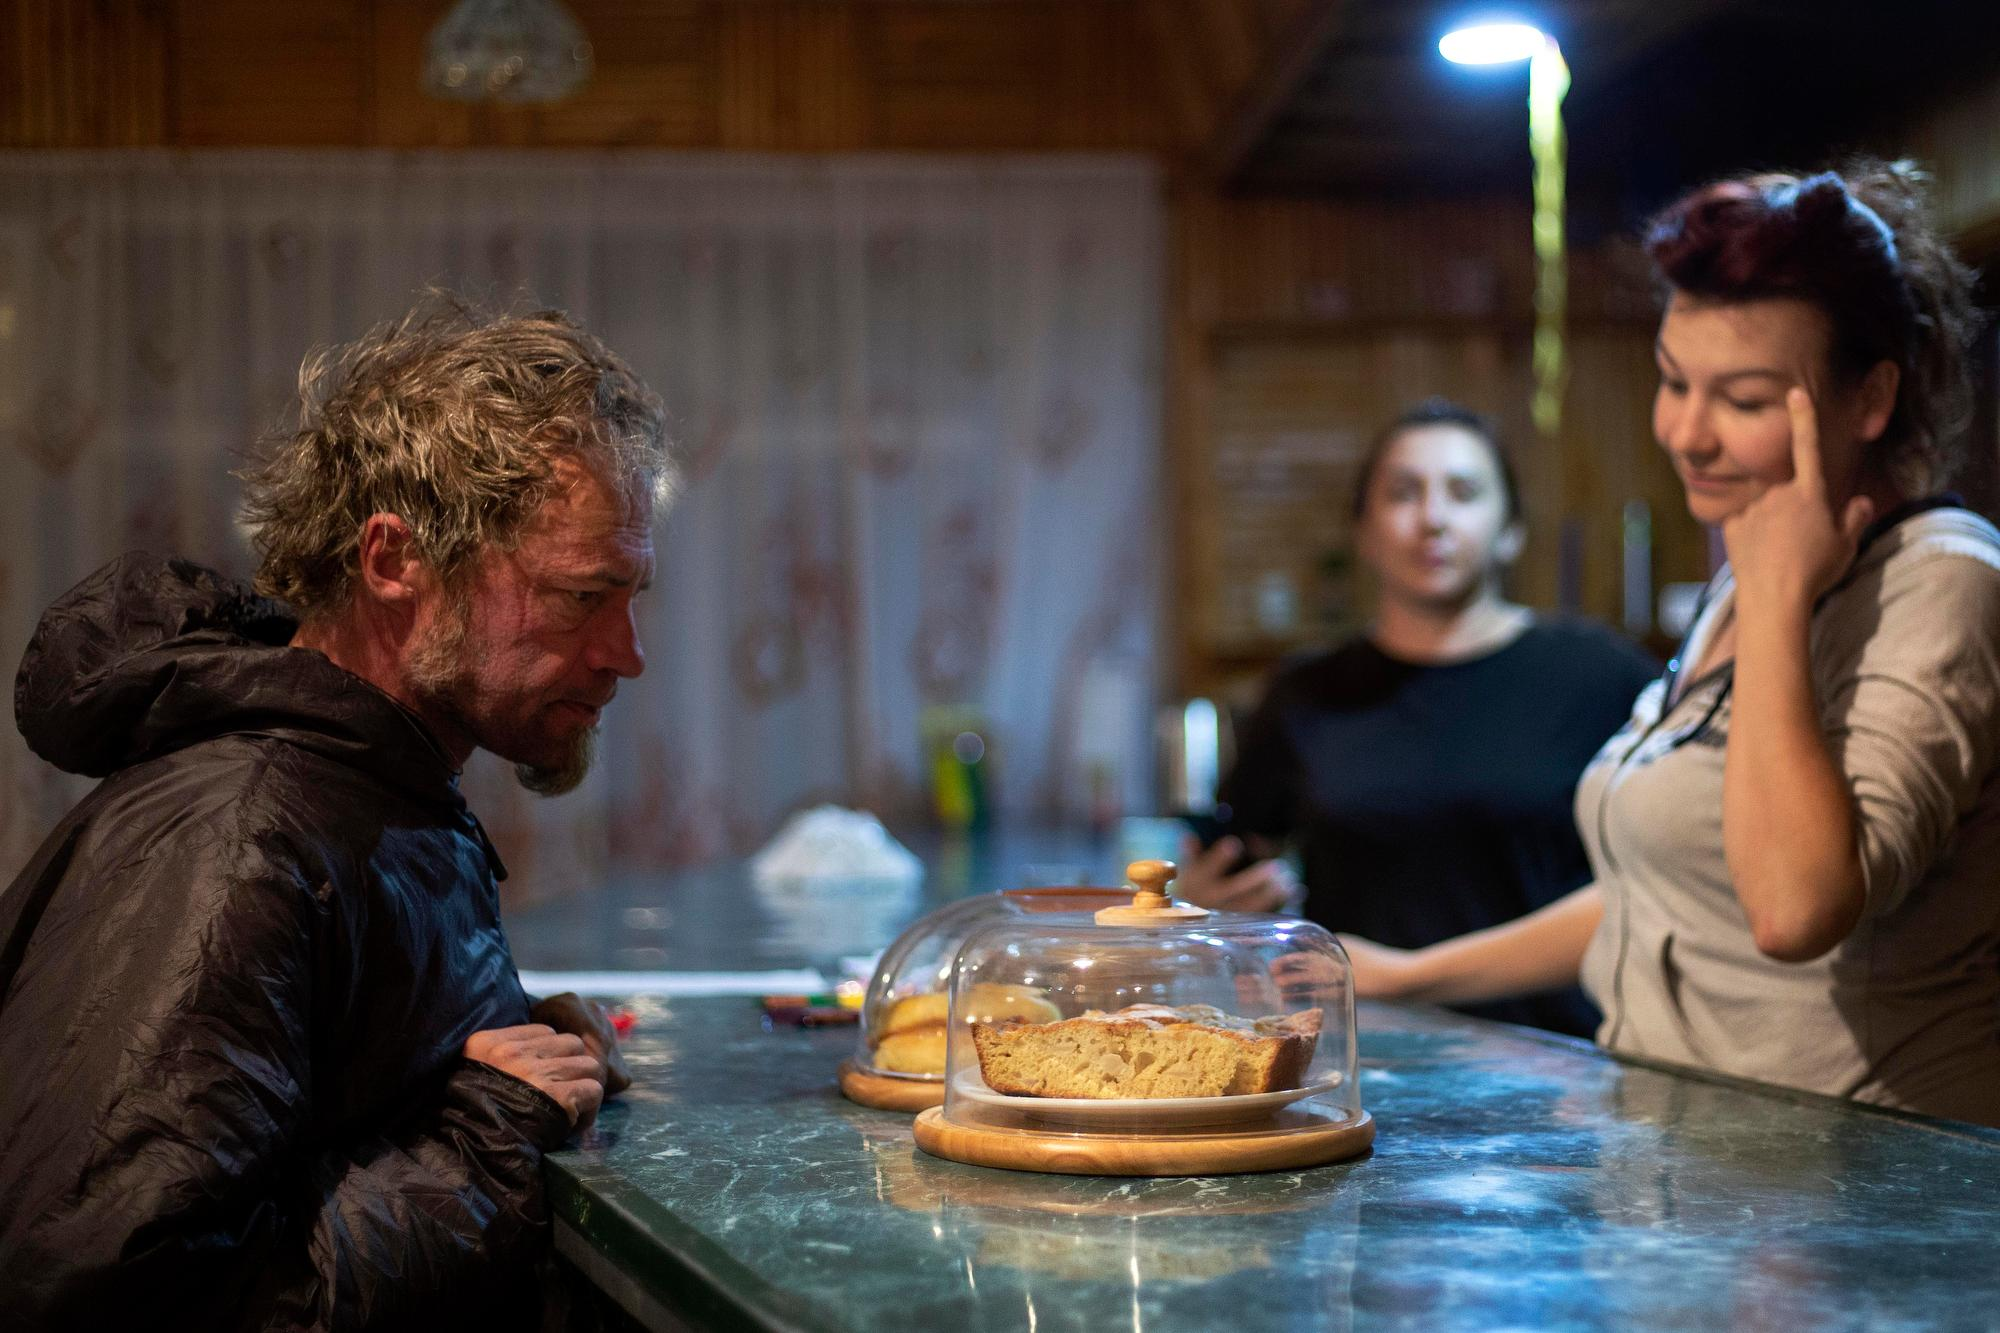 Jay Petervary eyes baked goods at checkpoint three. (Rugile Kaladyte)